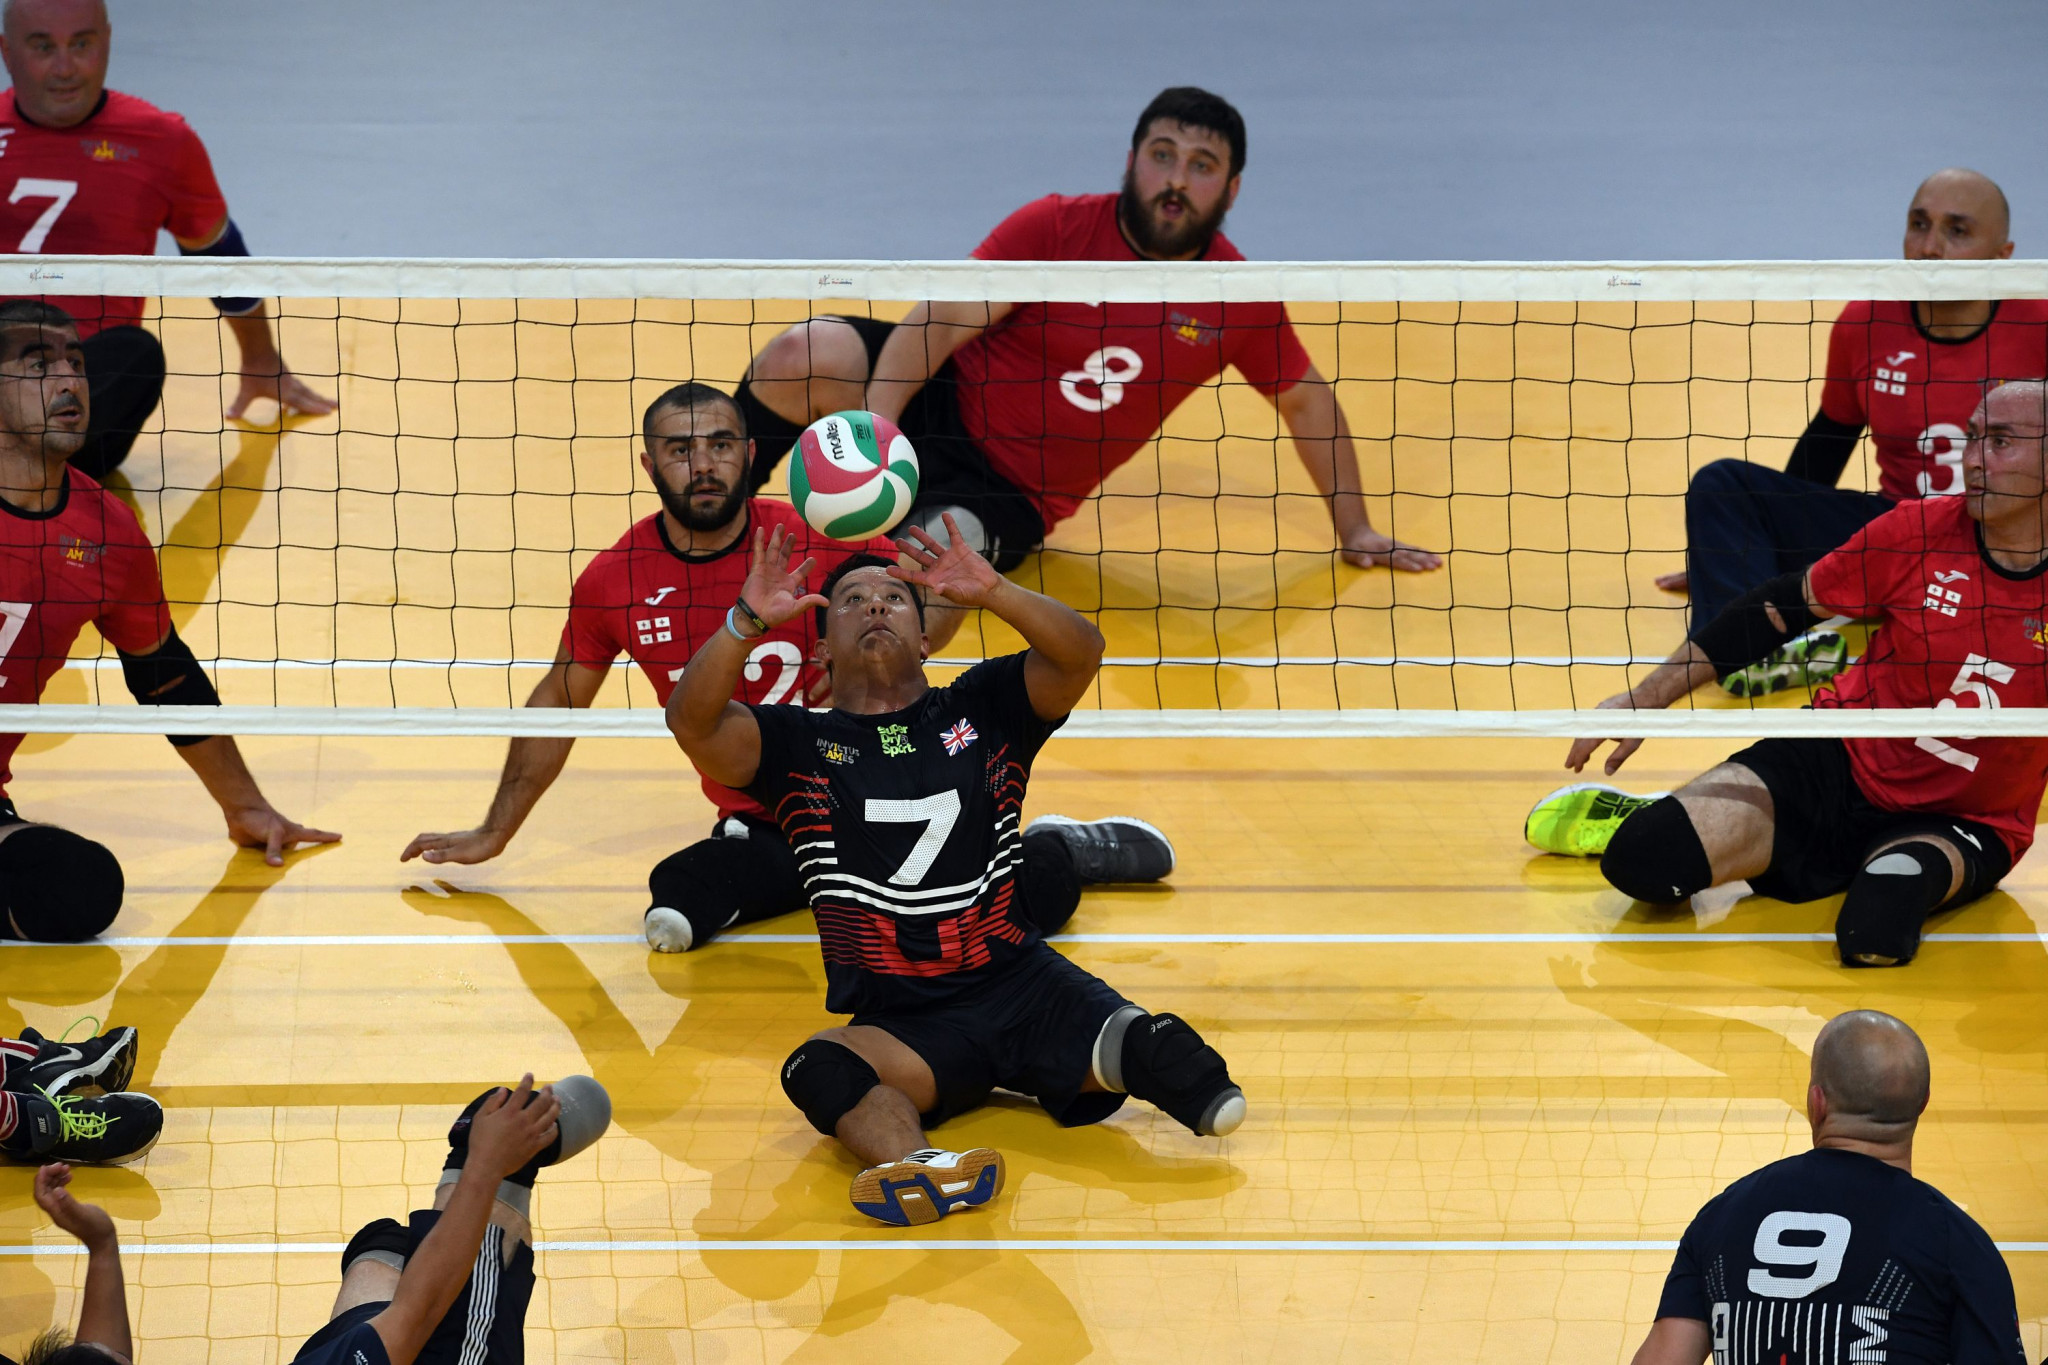 World ParaVolley has pledged to appoint two athletes to its Board ©Getty Images